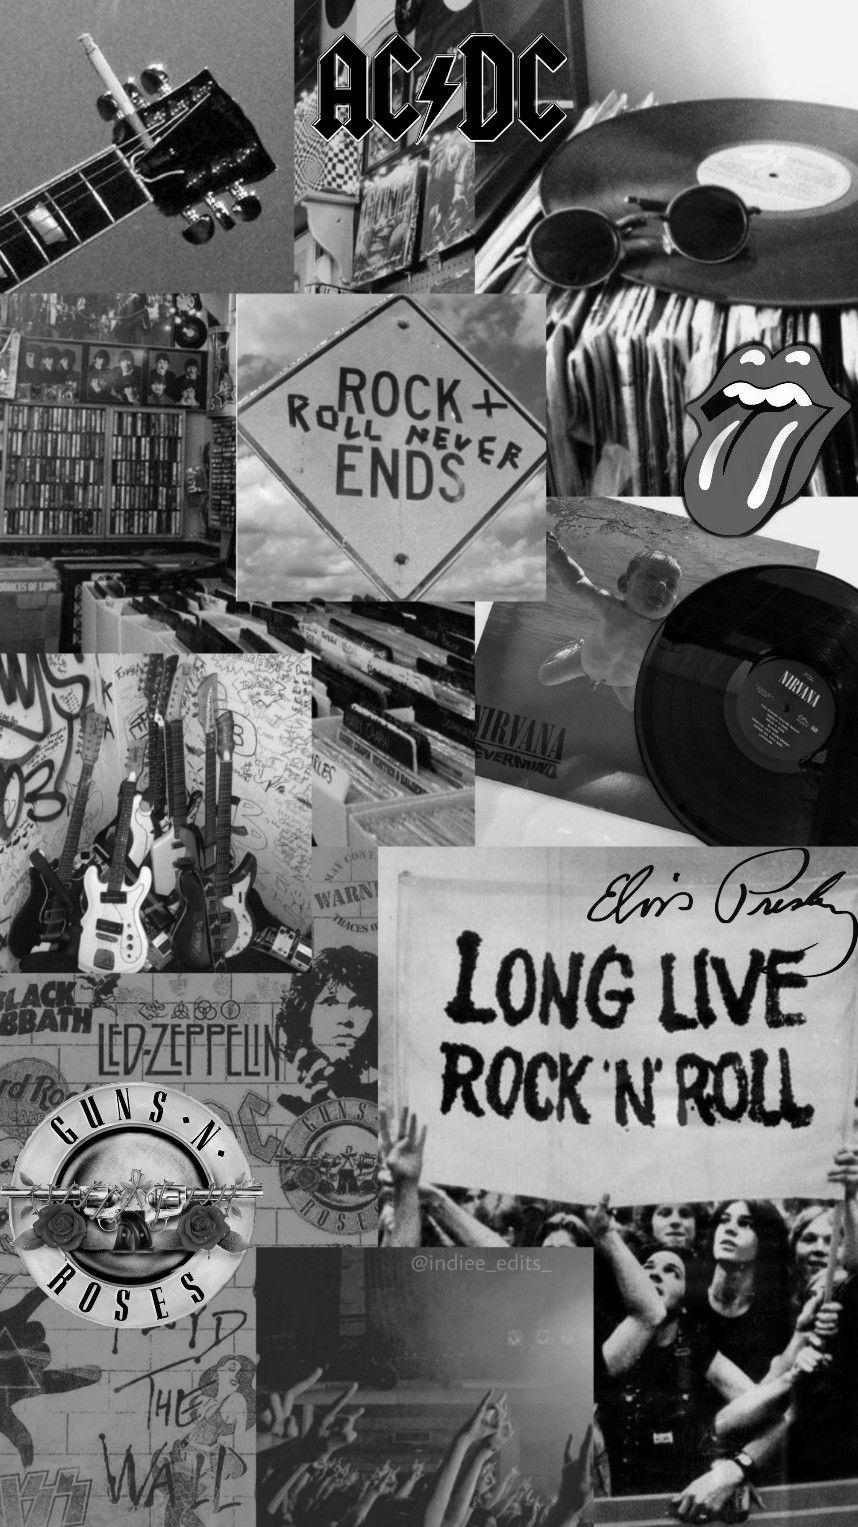 Rock Aesthetic Wallpaper Black Aesthetic Wallpaper Band Wallpapers Rock And Roll